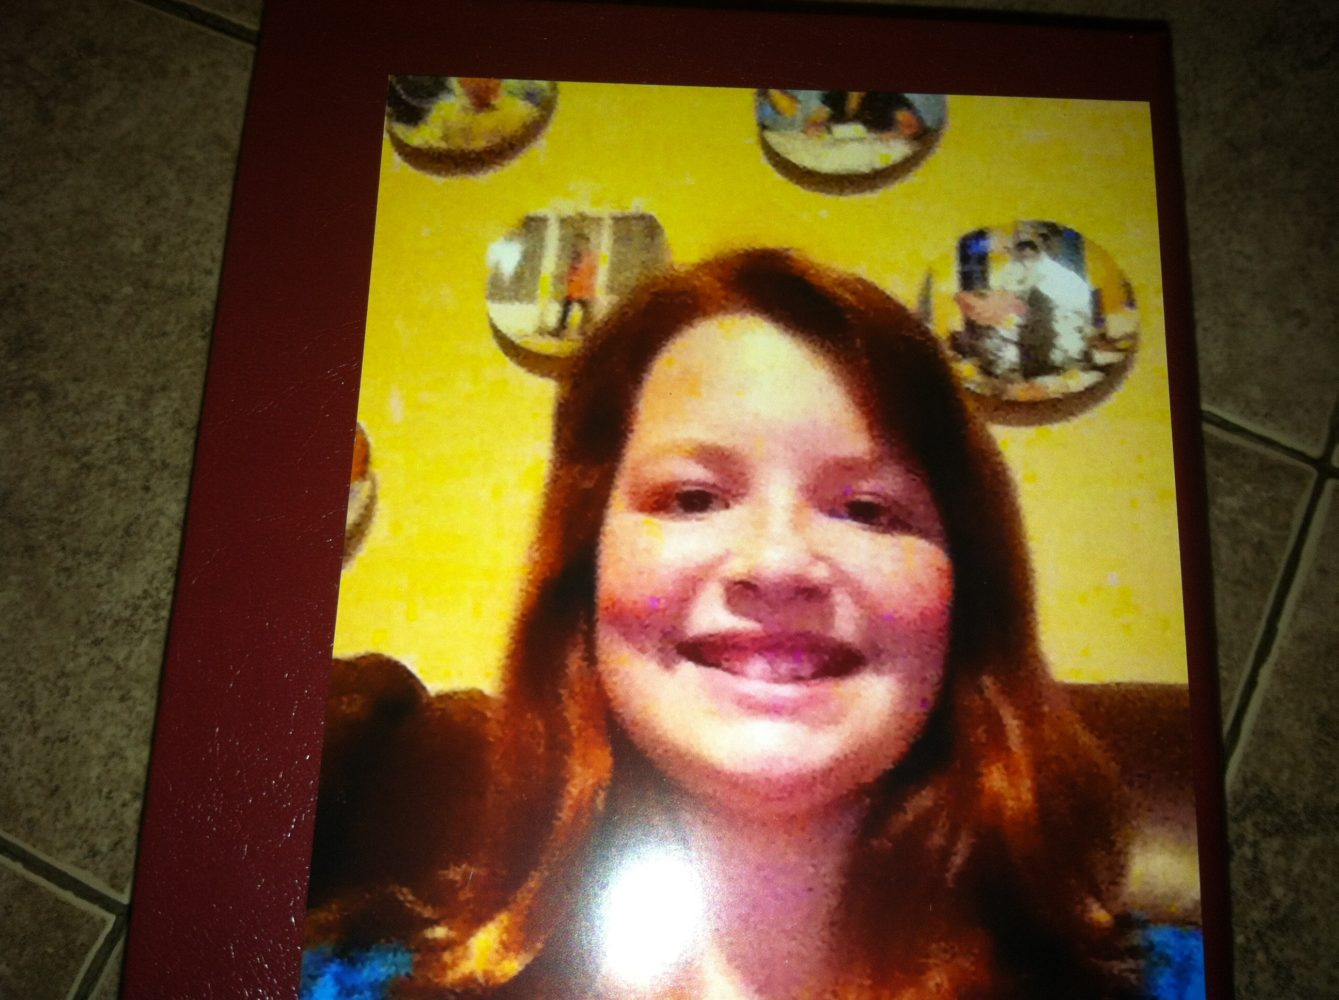 Endangered Person Advisory issued for Grandview teen